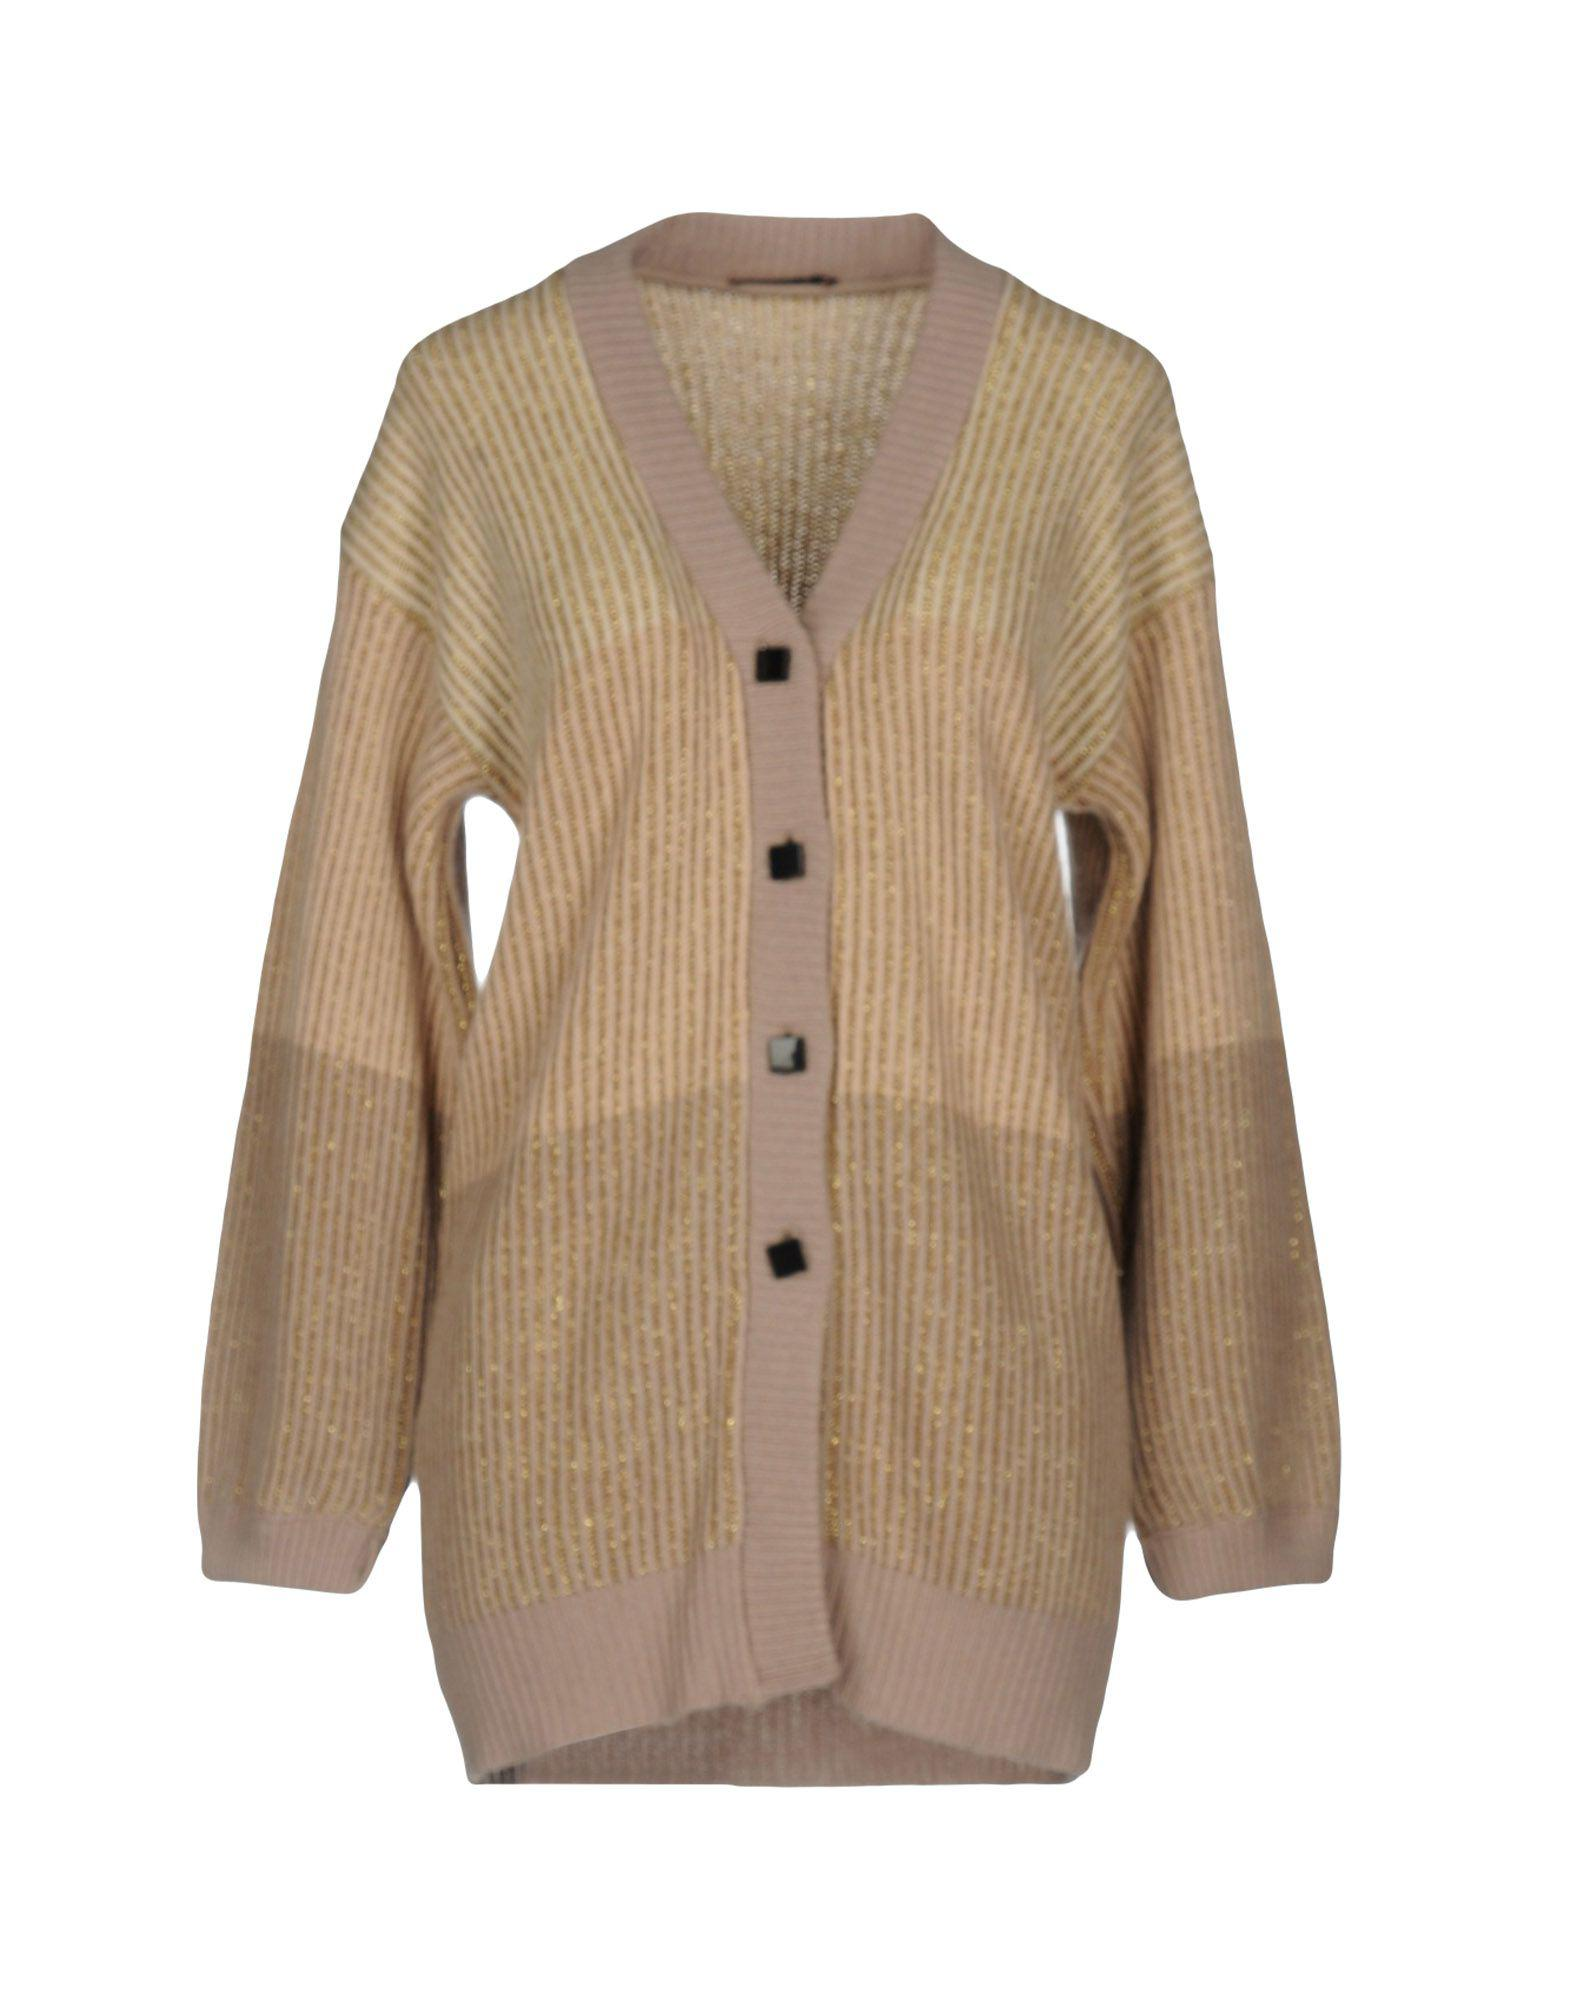 Manchester Outlet Store Locations KNITWEAR - Cardigans Dv Roma LKHxt0jc